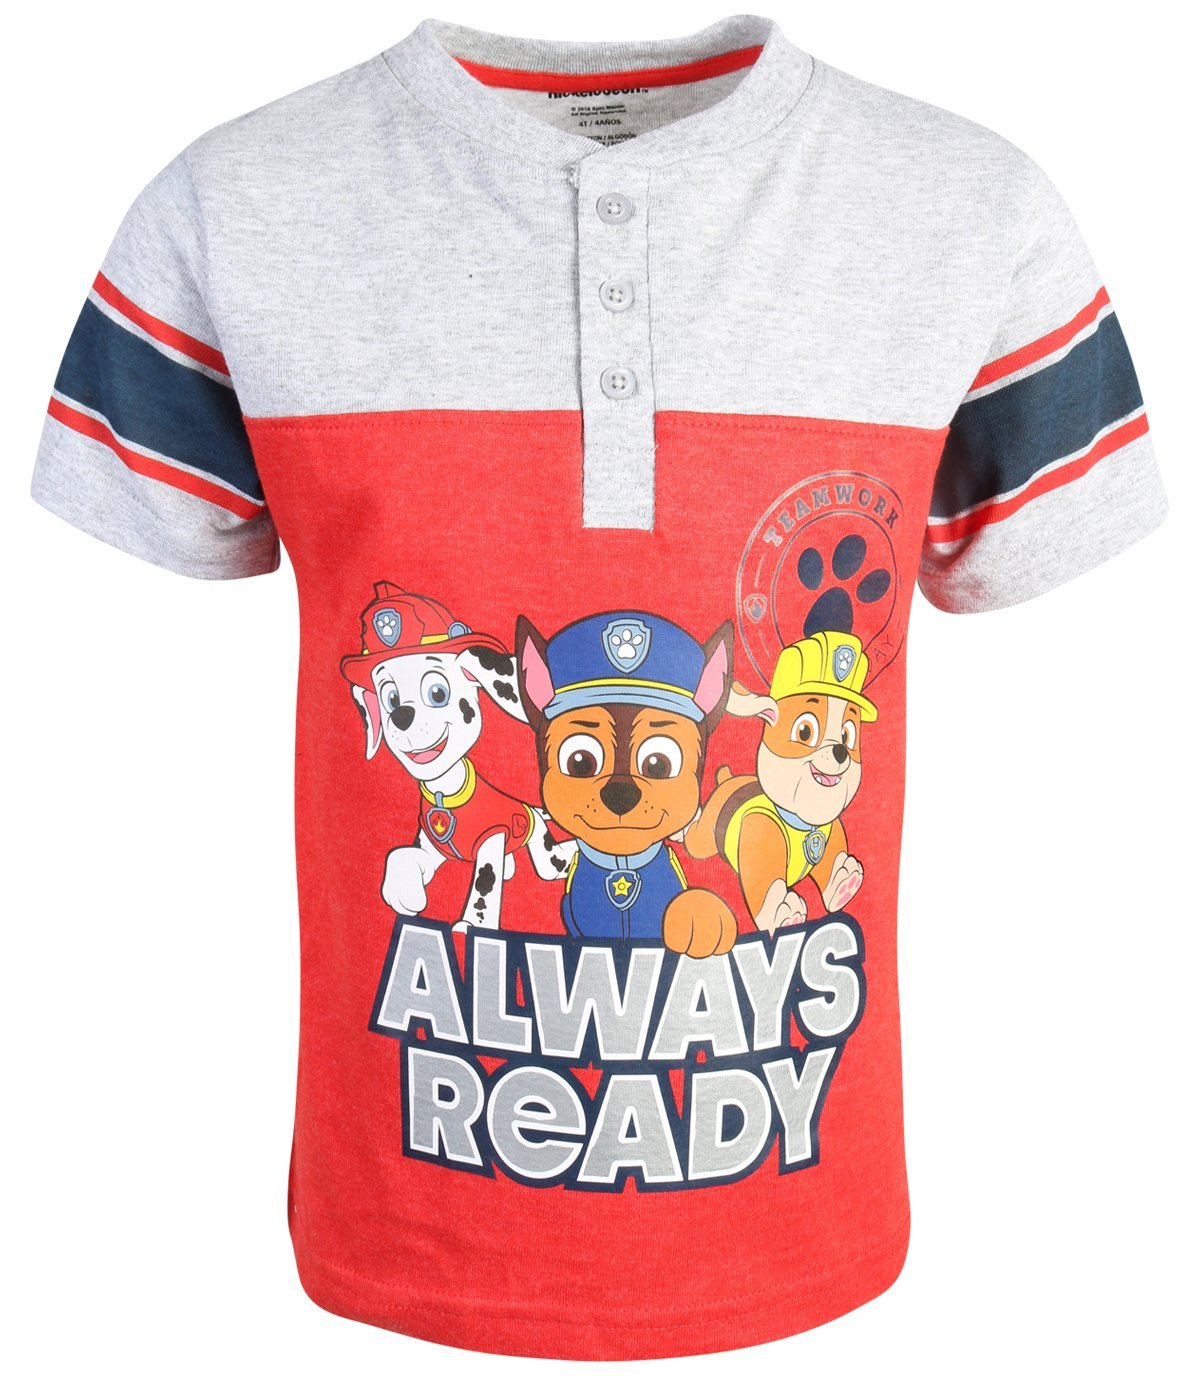 Nickelodeon Paw Patrol Boys 2-Piece French Terry Short Set, Always Ready, Size 6' by Nickelodeon (Image #2)